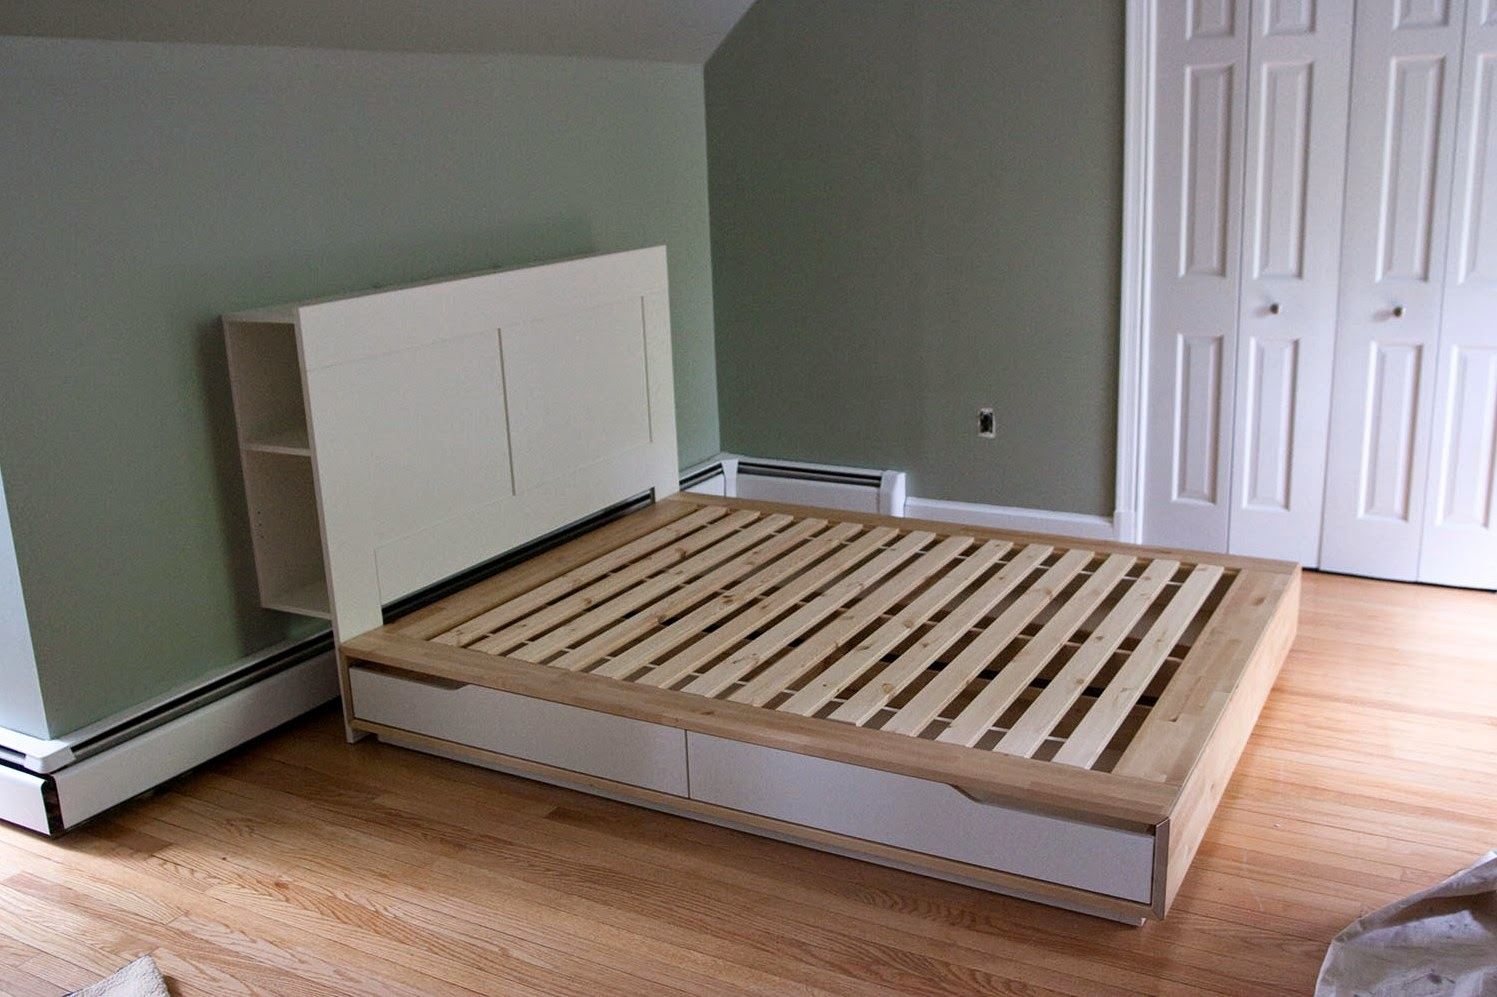 Shelf Headboard Ideas Part - 44: Ikea Bed Frame Storage Headboard